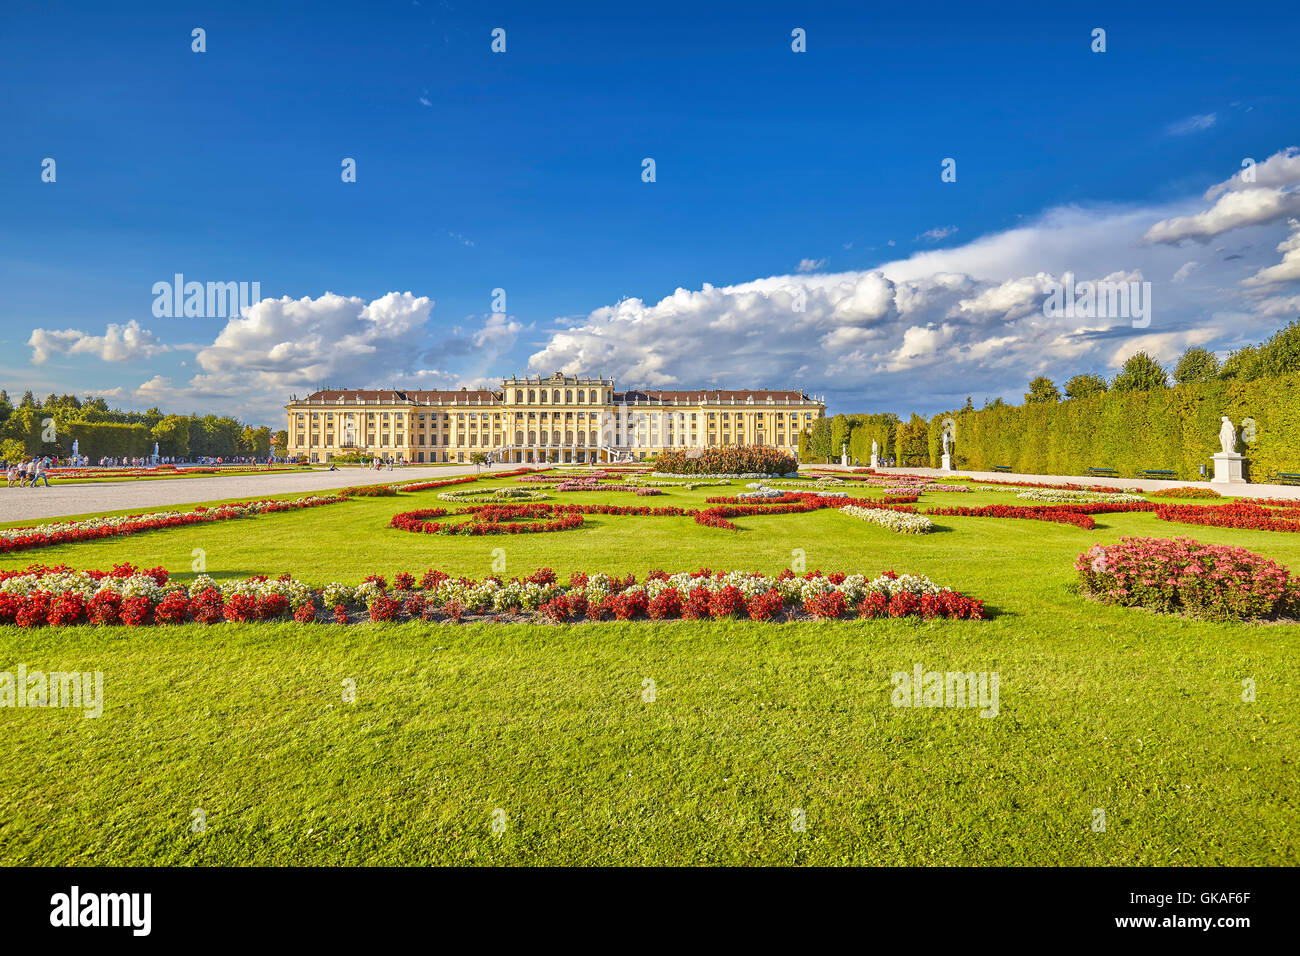 Garden in the Schonbrunn Palace complex. - Stock Image